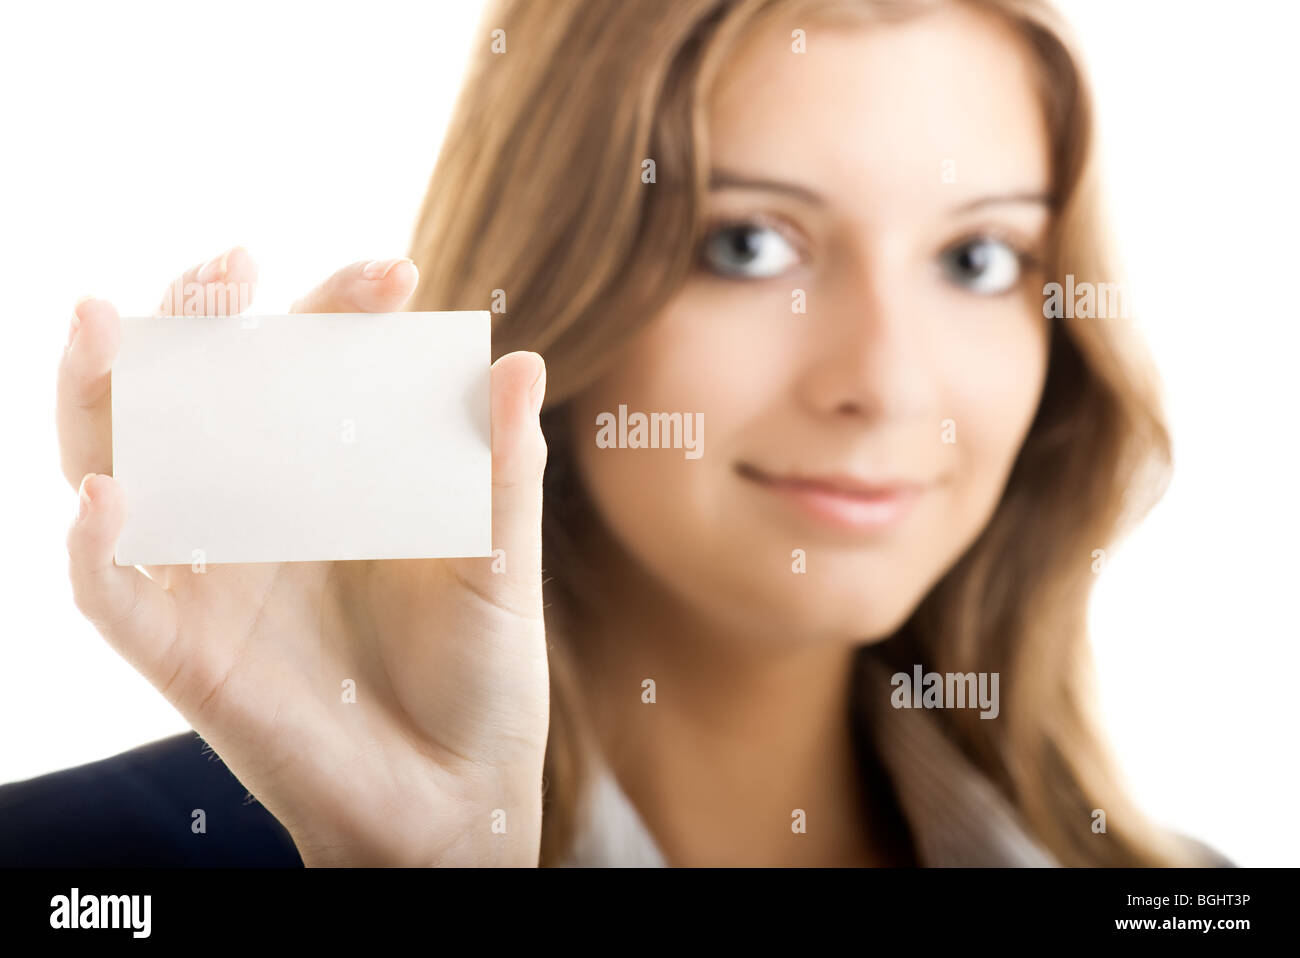 beautiful business woman holding a blank notecard - Focus is on the card - Stock Image